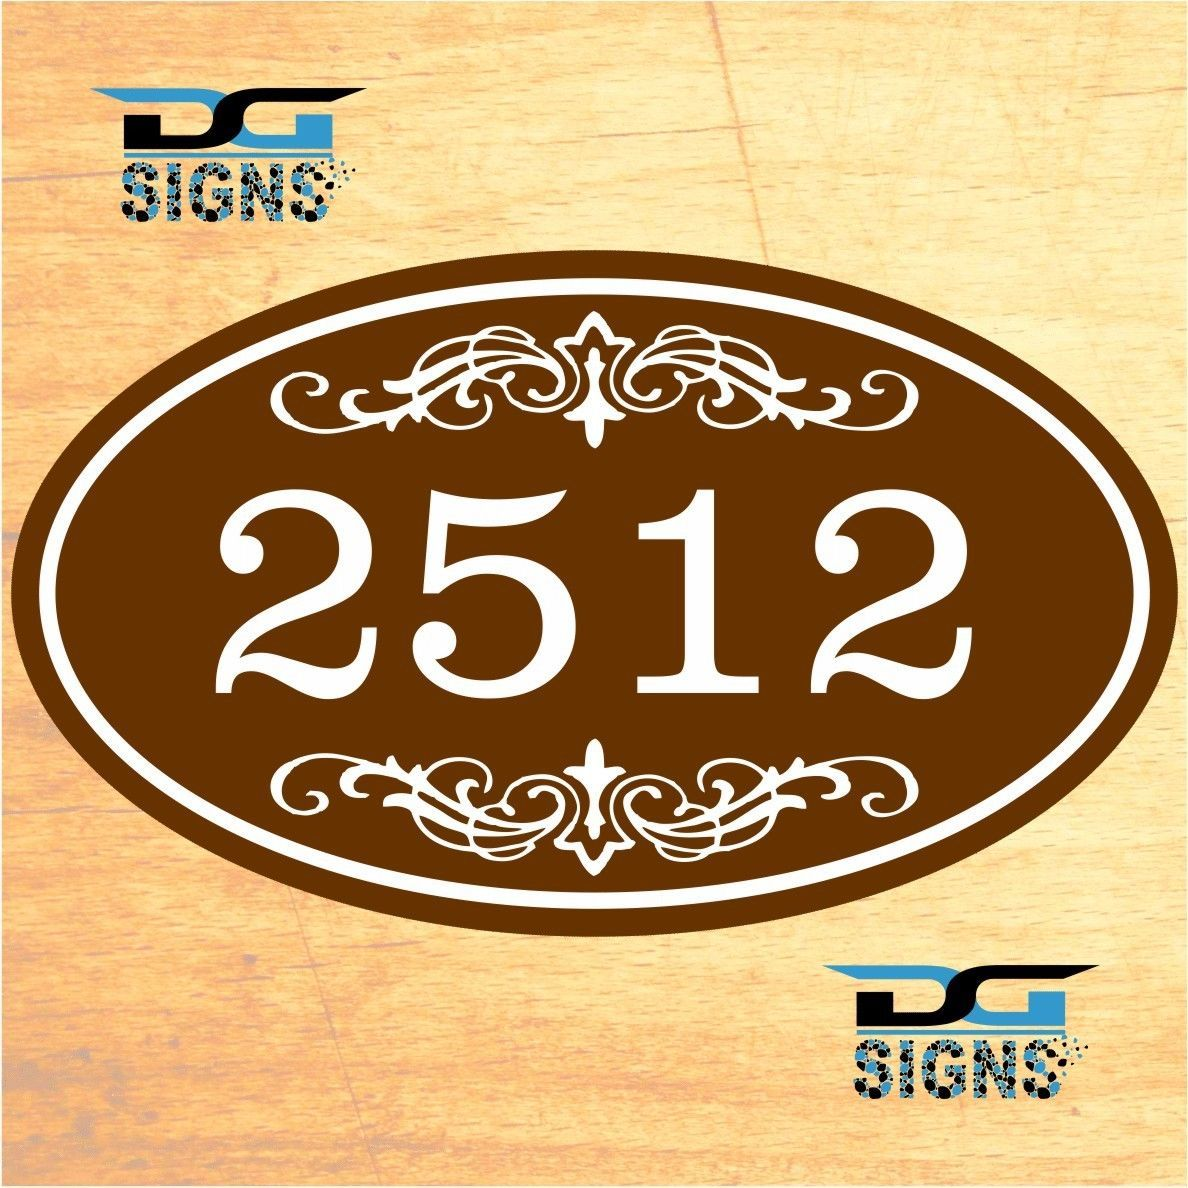 Decorative Signs For Your Home: 3008 Personalized Home Address Decorative Custom Plaque 12